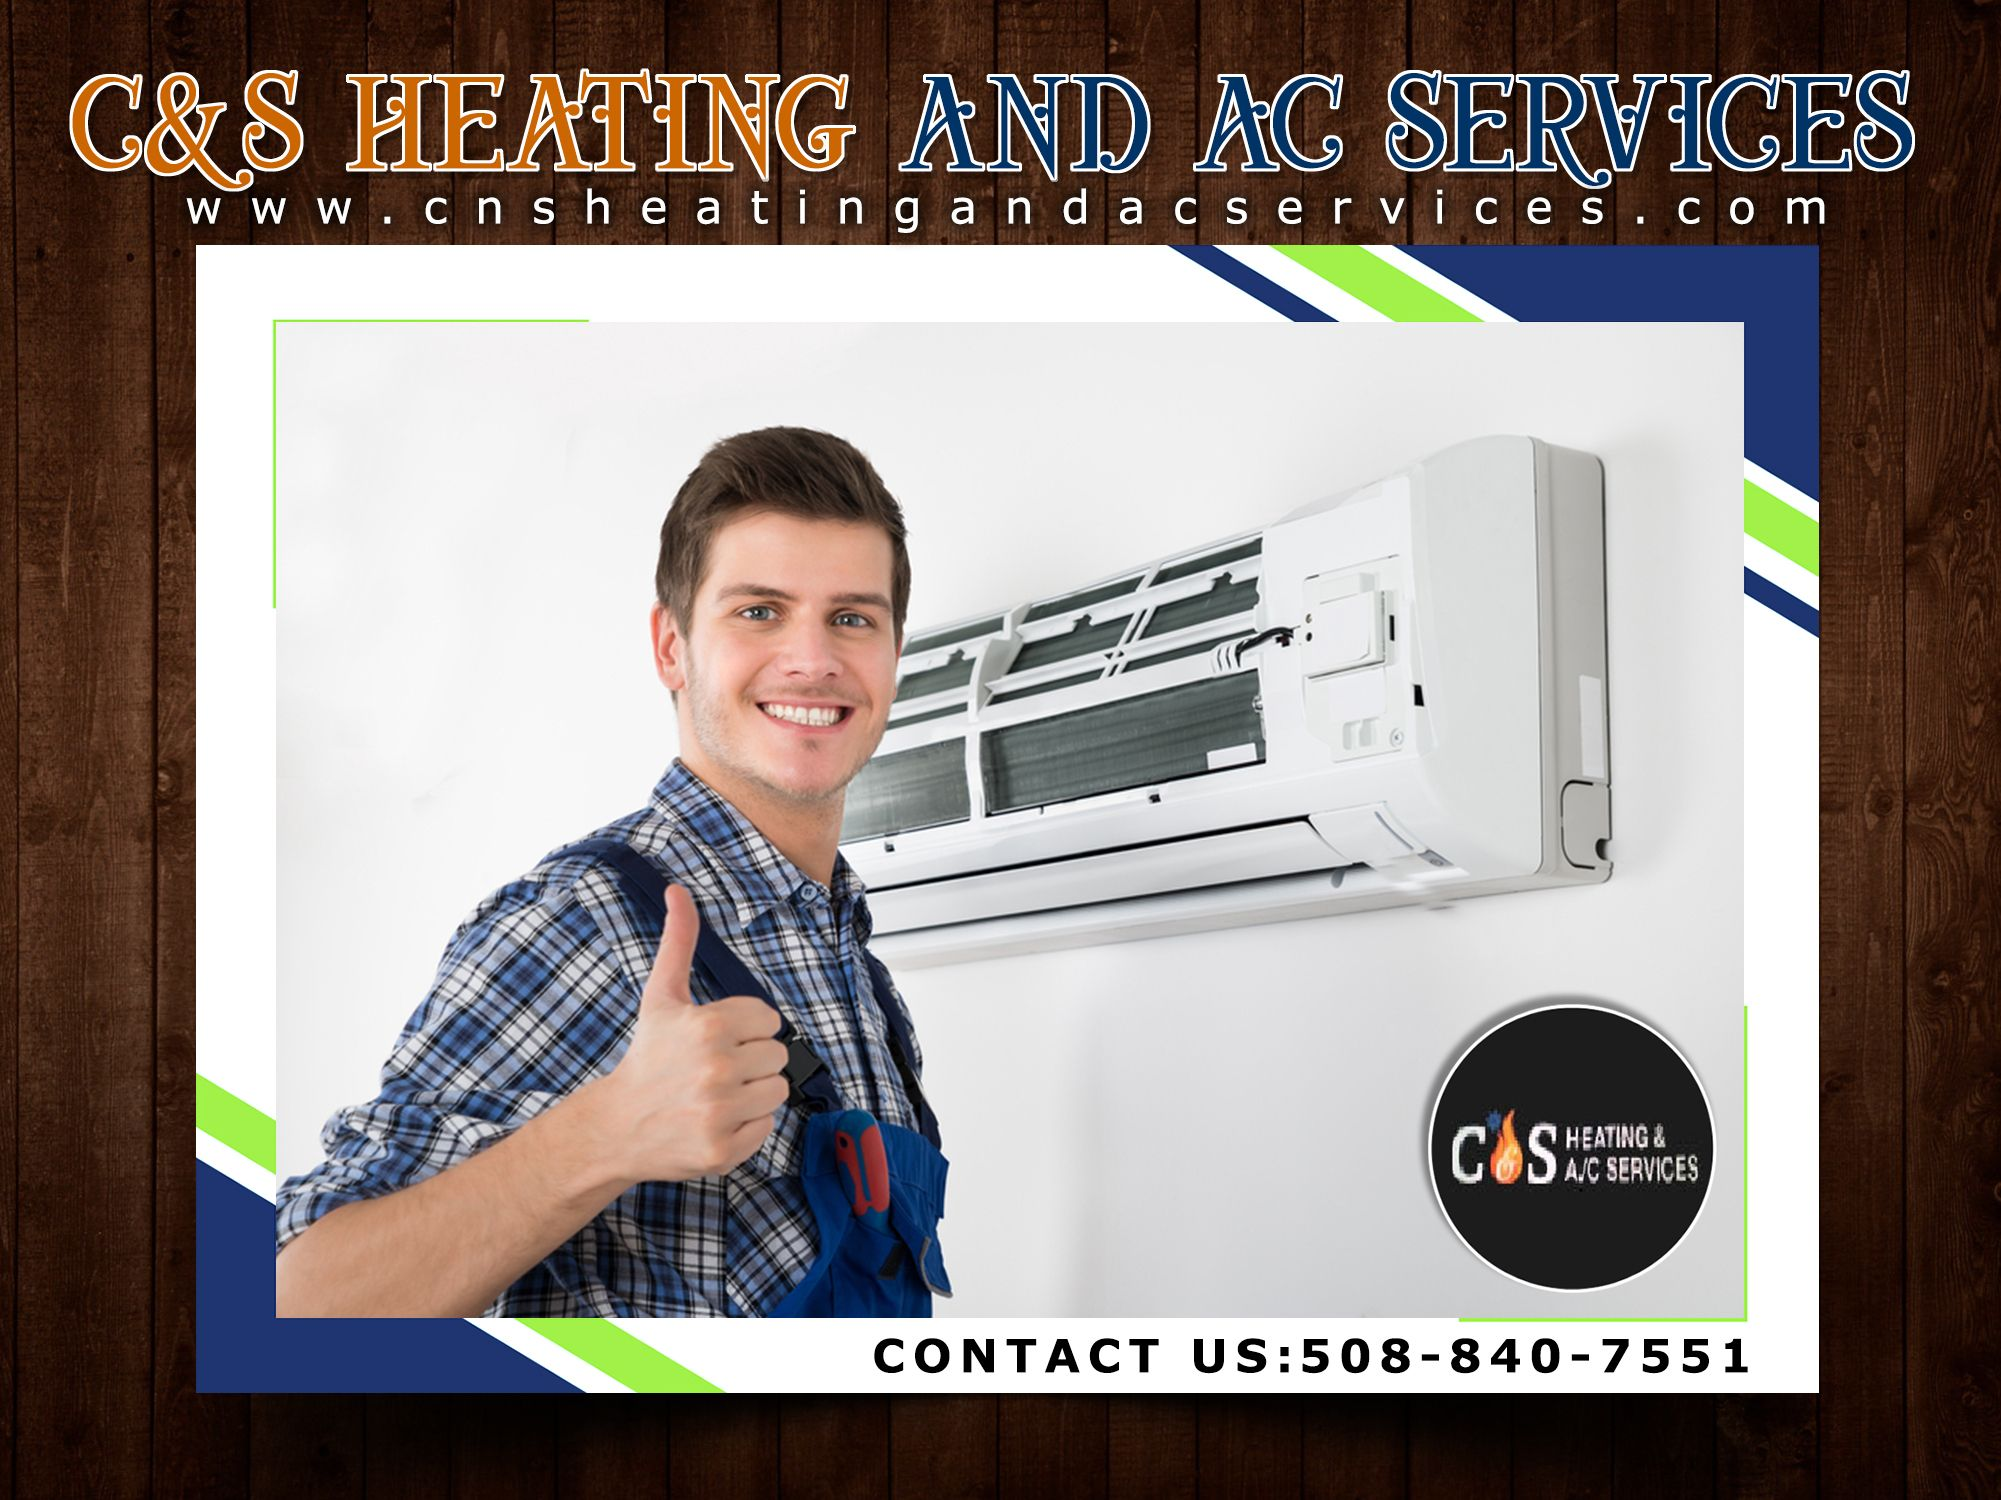 C&S Heating and AC Services has been serving Raynham, MA